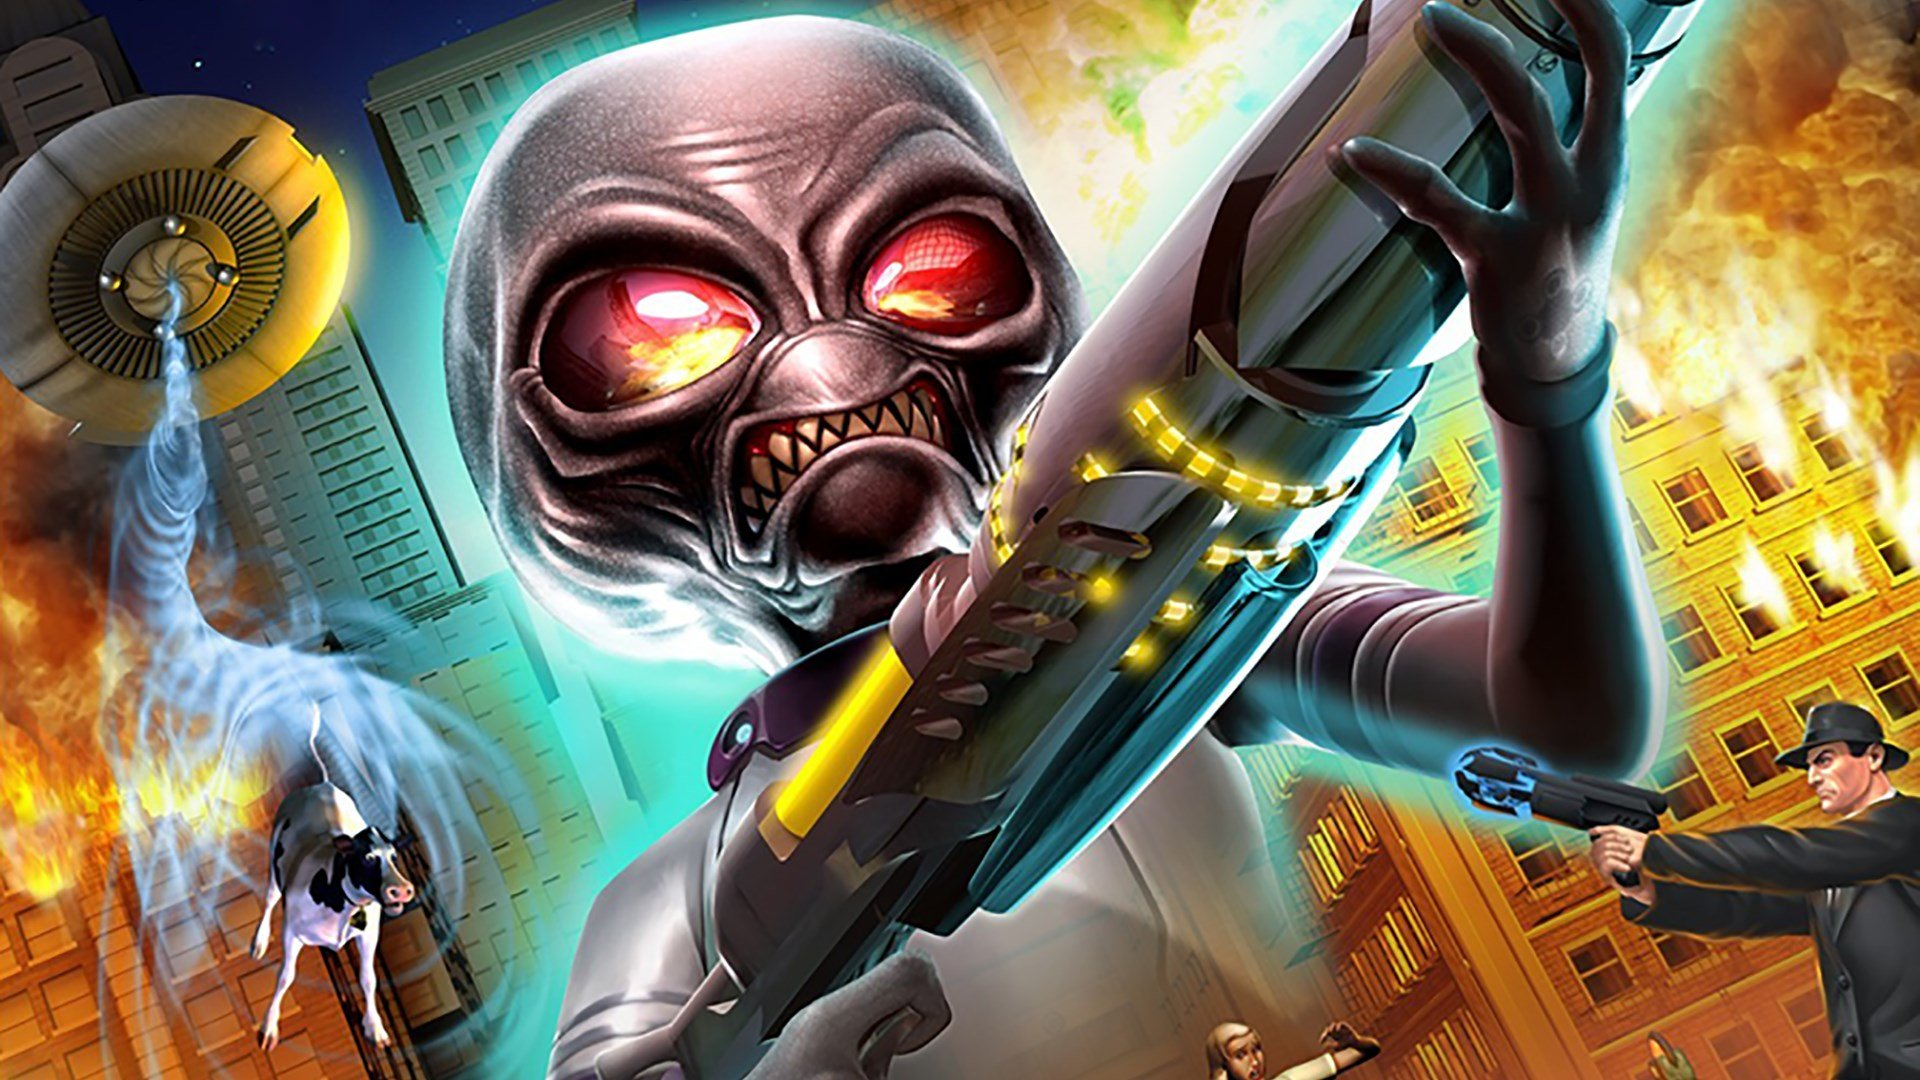 We may get more information about Destroy All Humans this August.